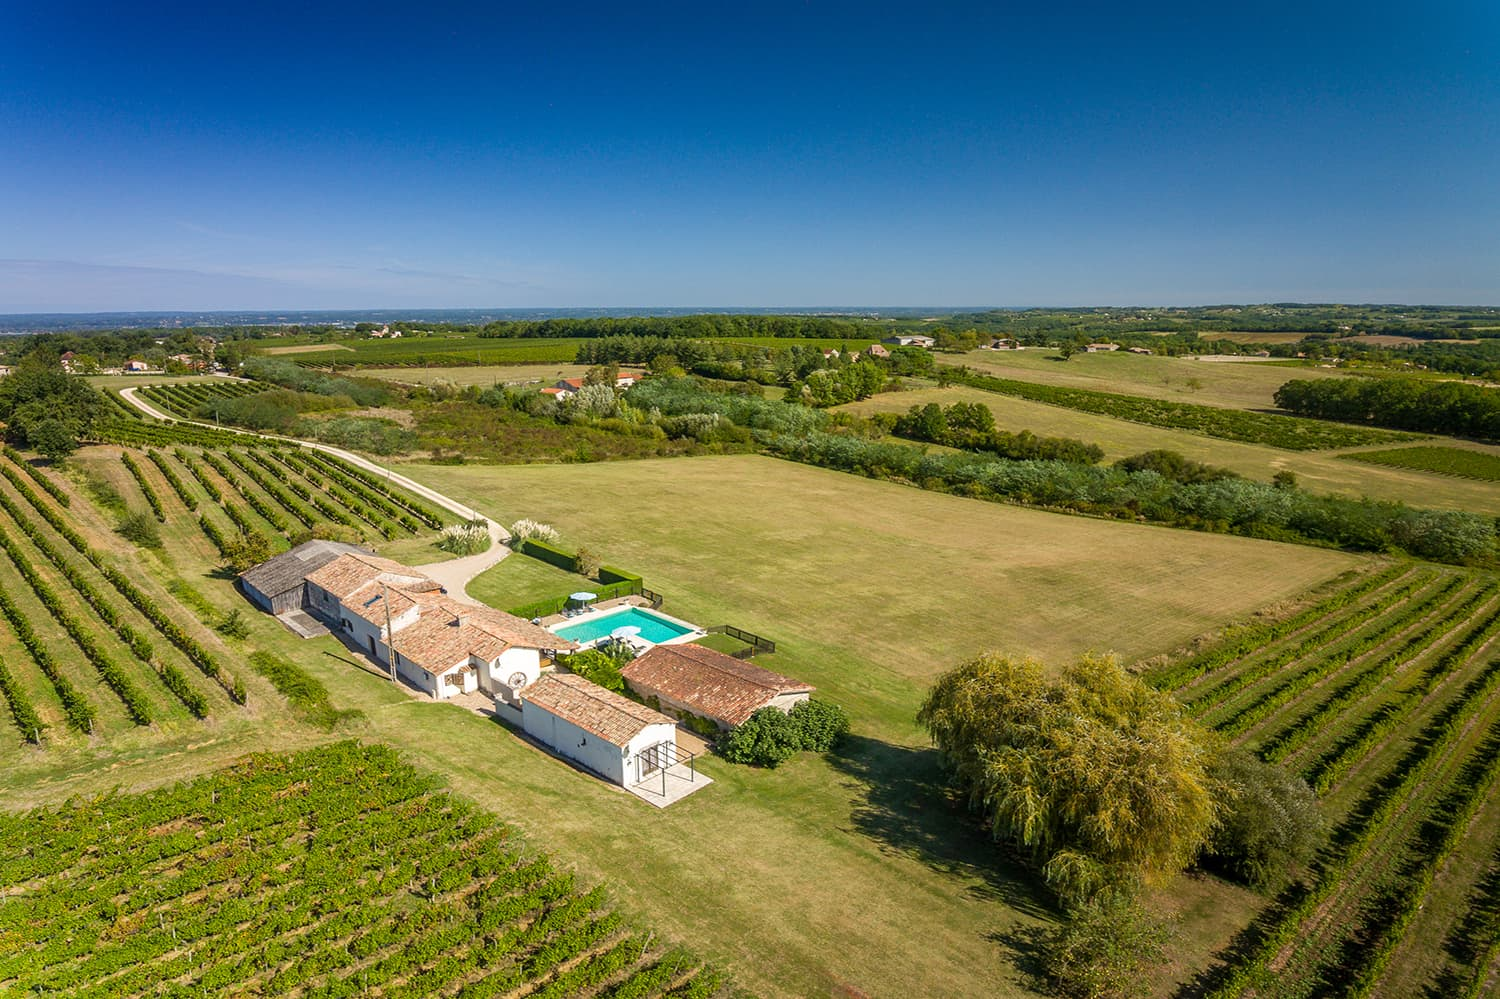 Holiday accommodation in Saussignac, Nouvelle-Aquitaine, with heated private pool